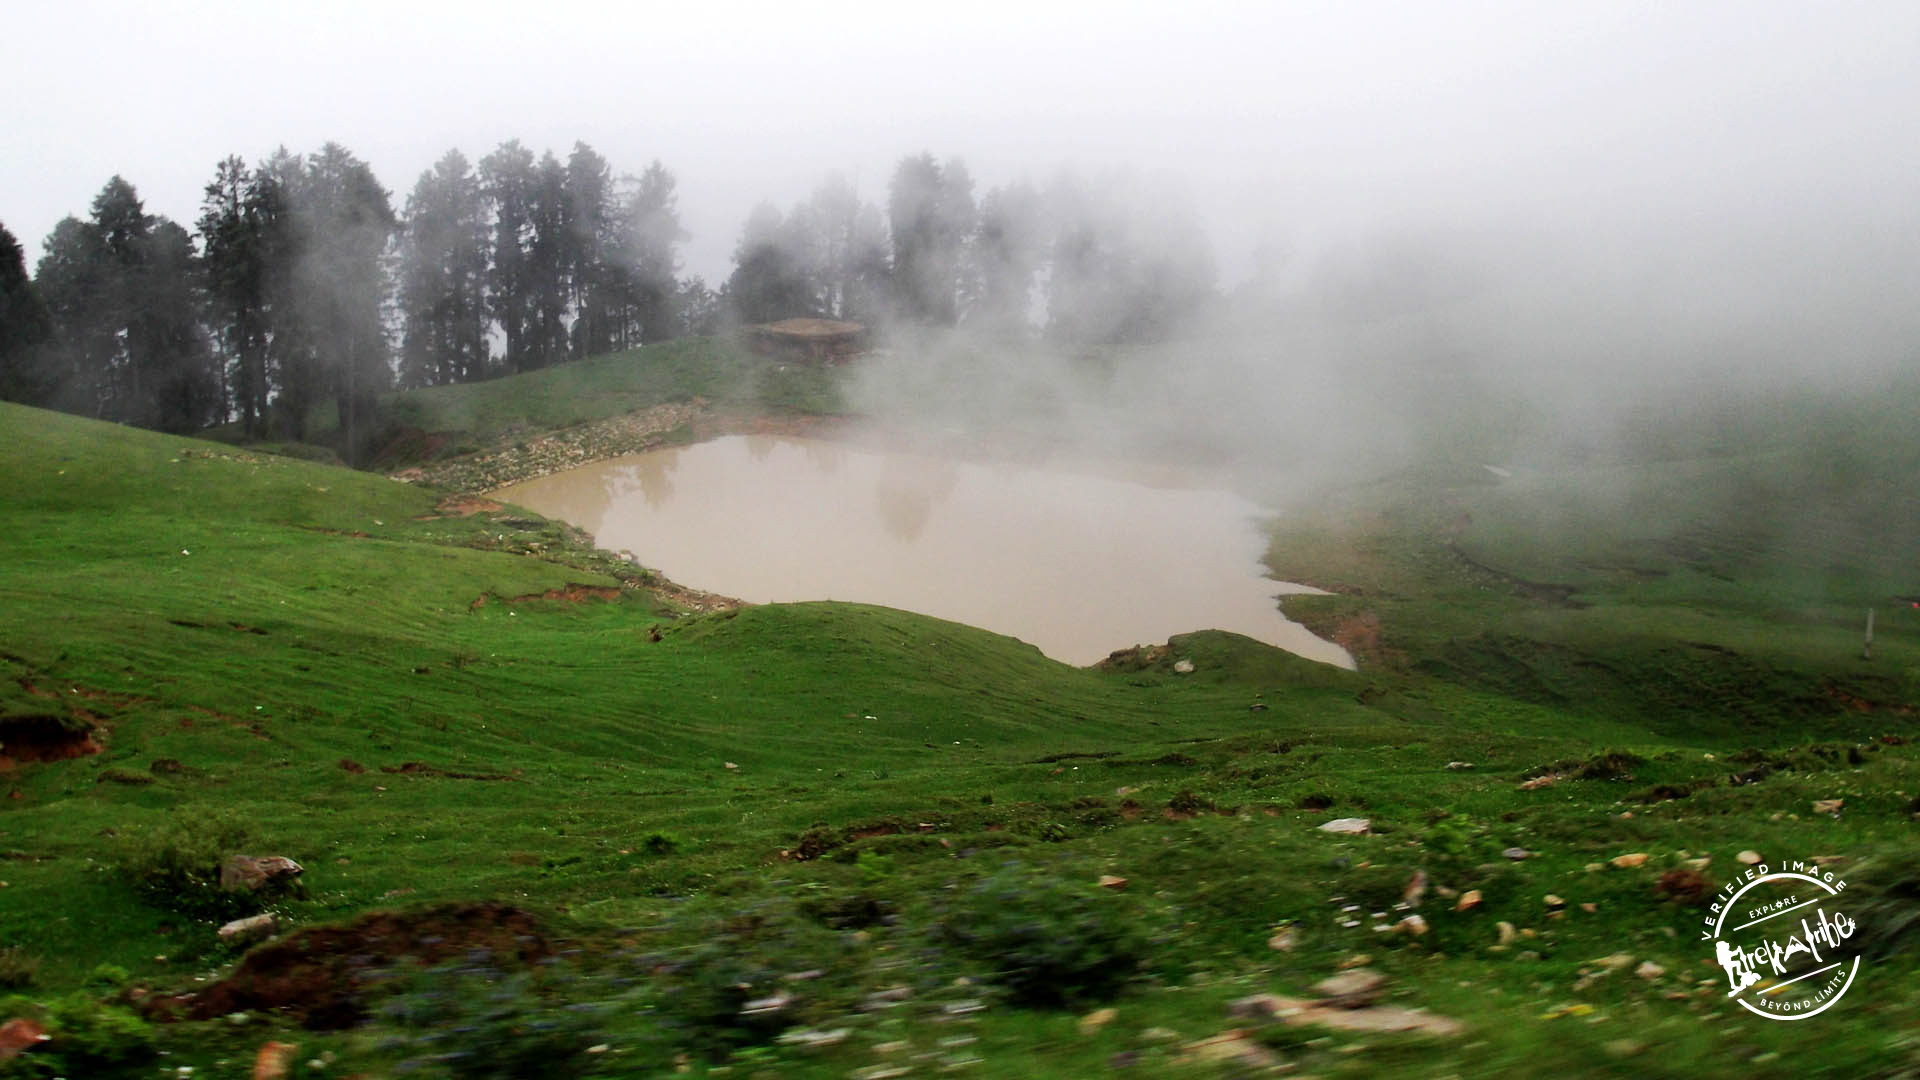 Prashar Lake 10 - Prashar Lake